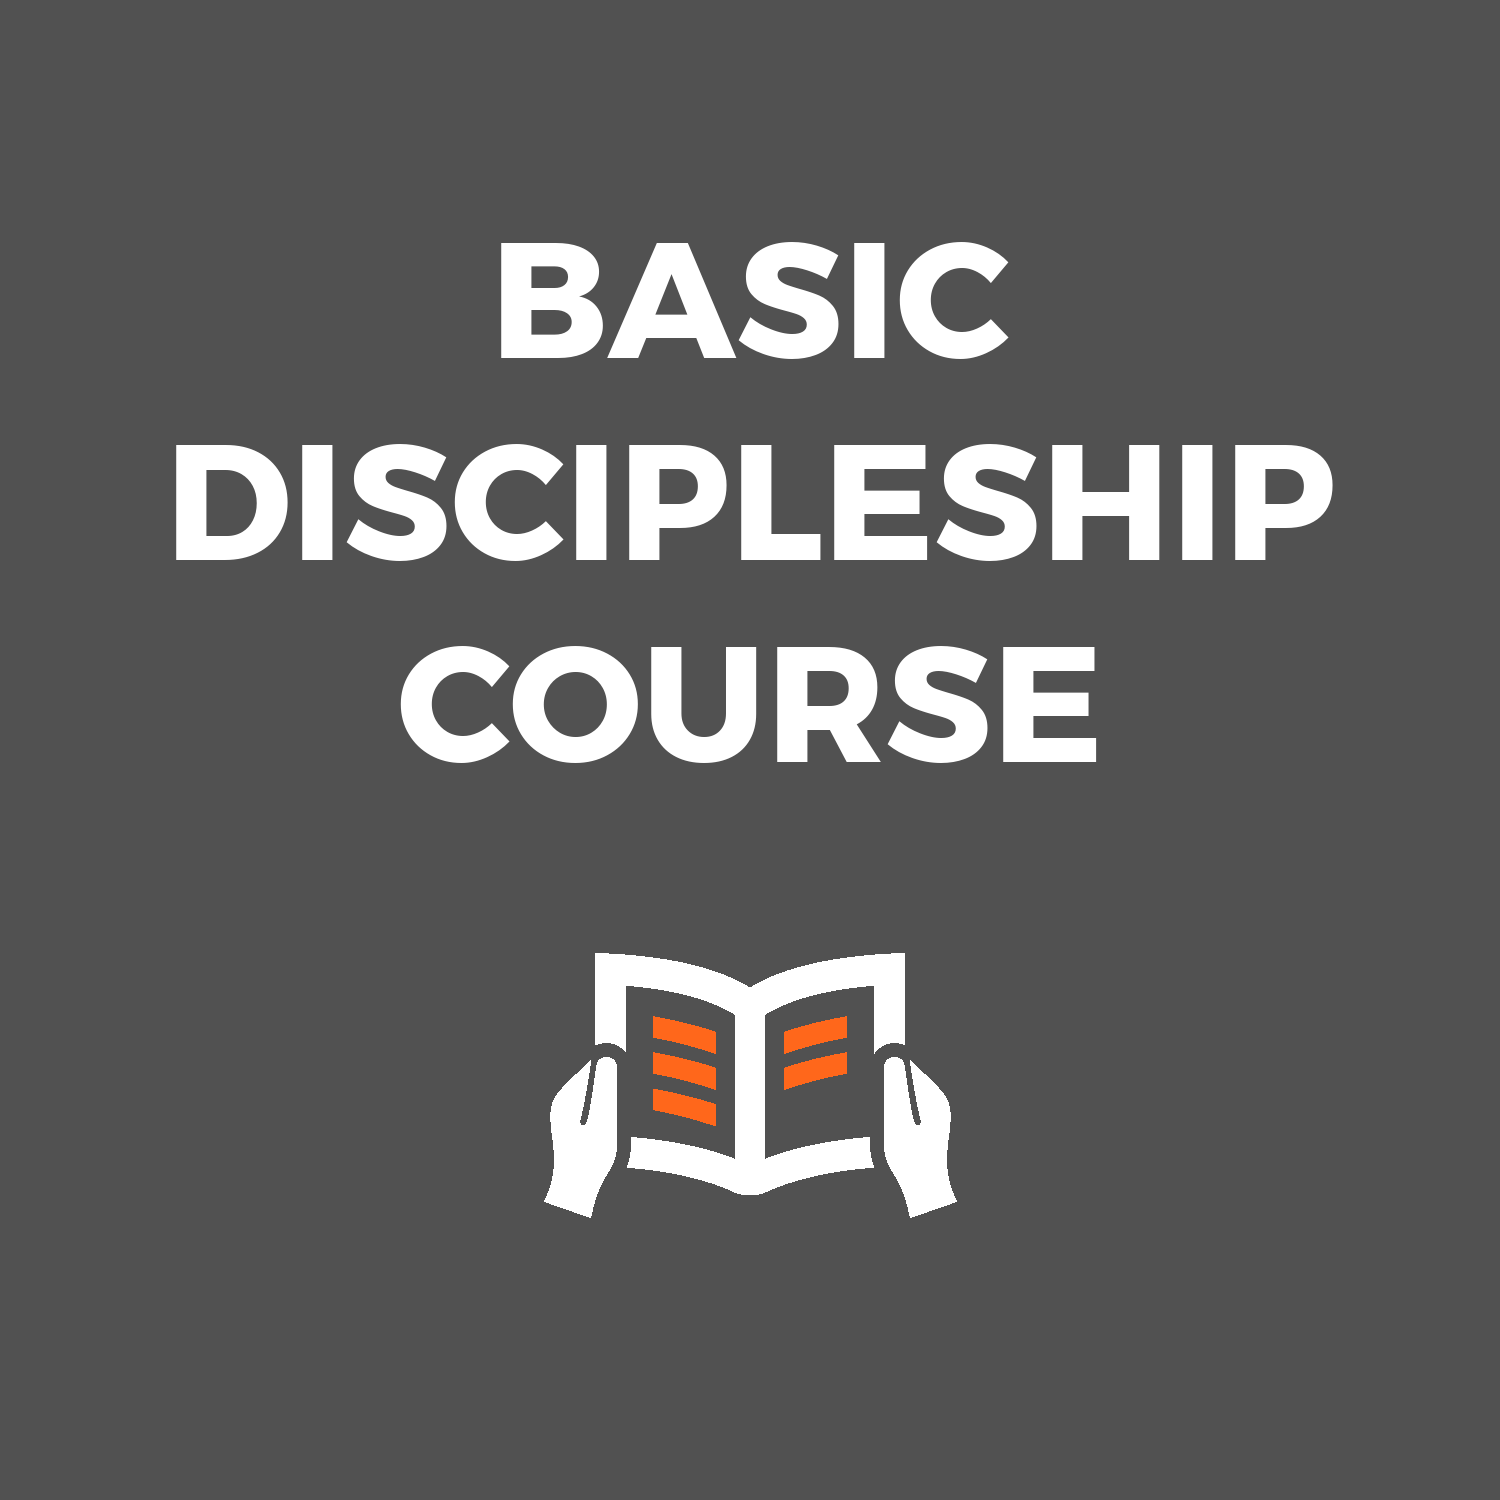 Basic Discipleship Course